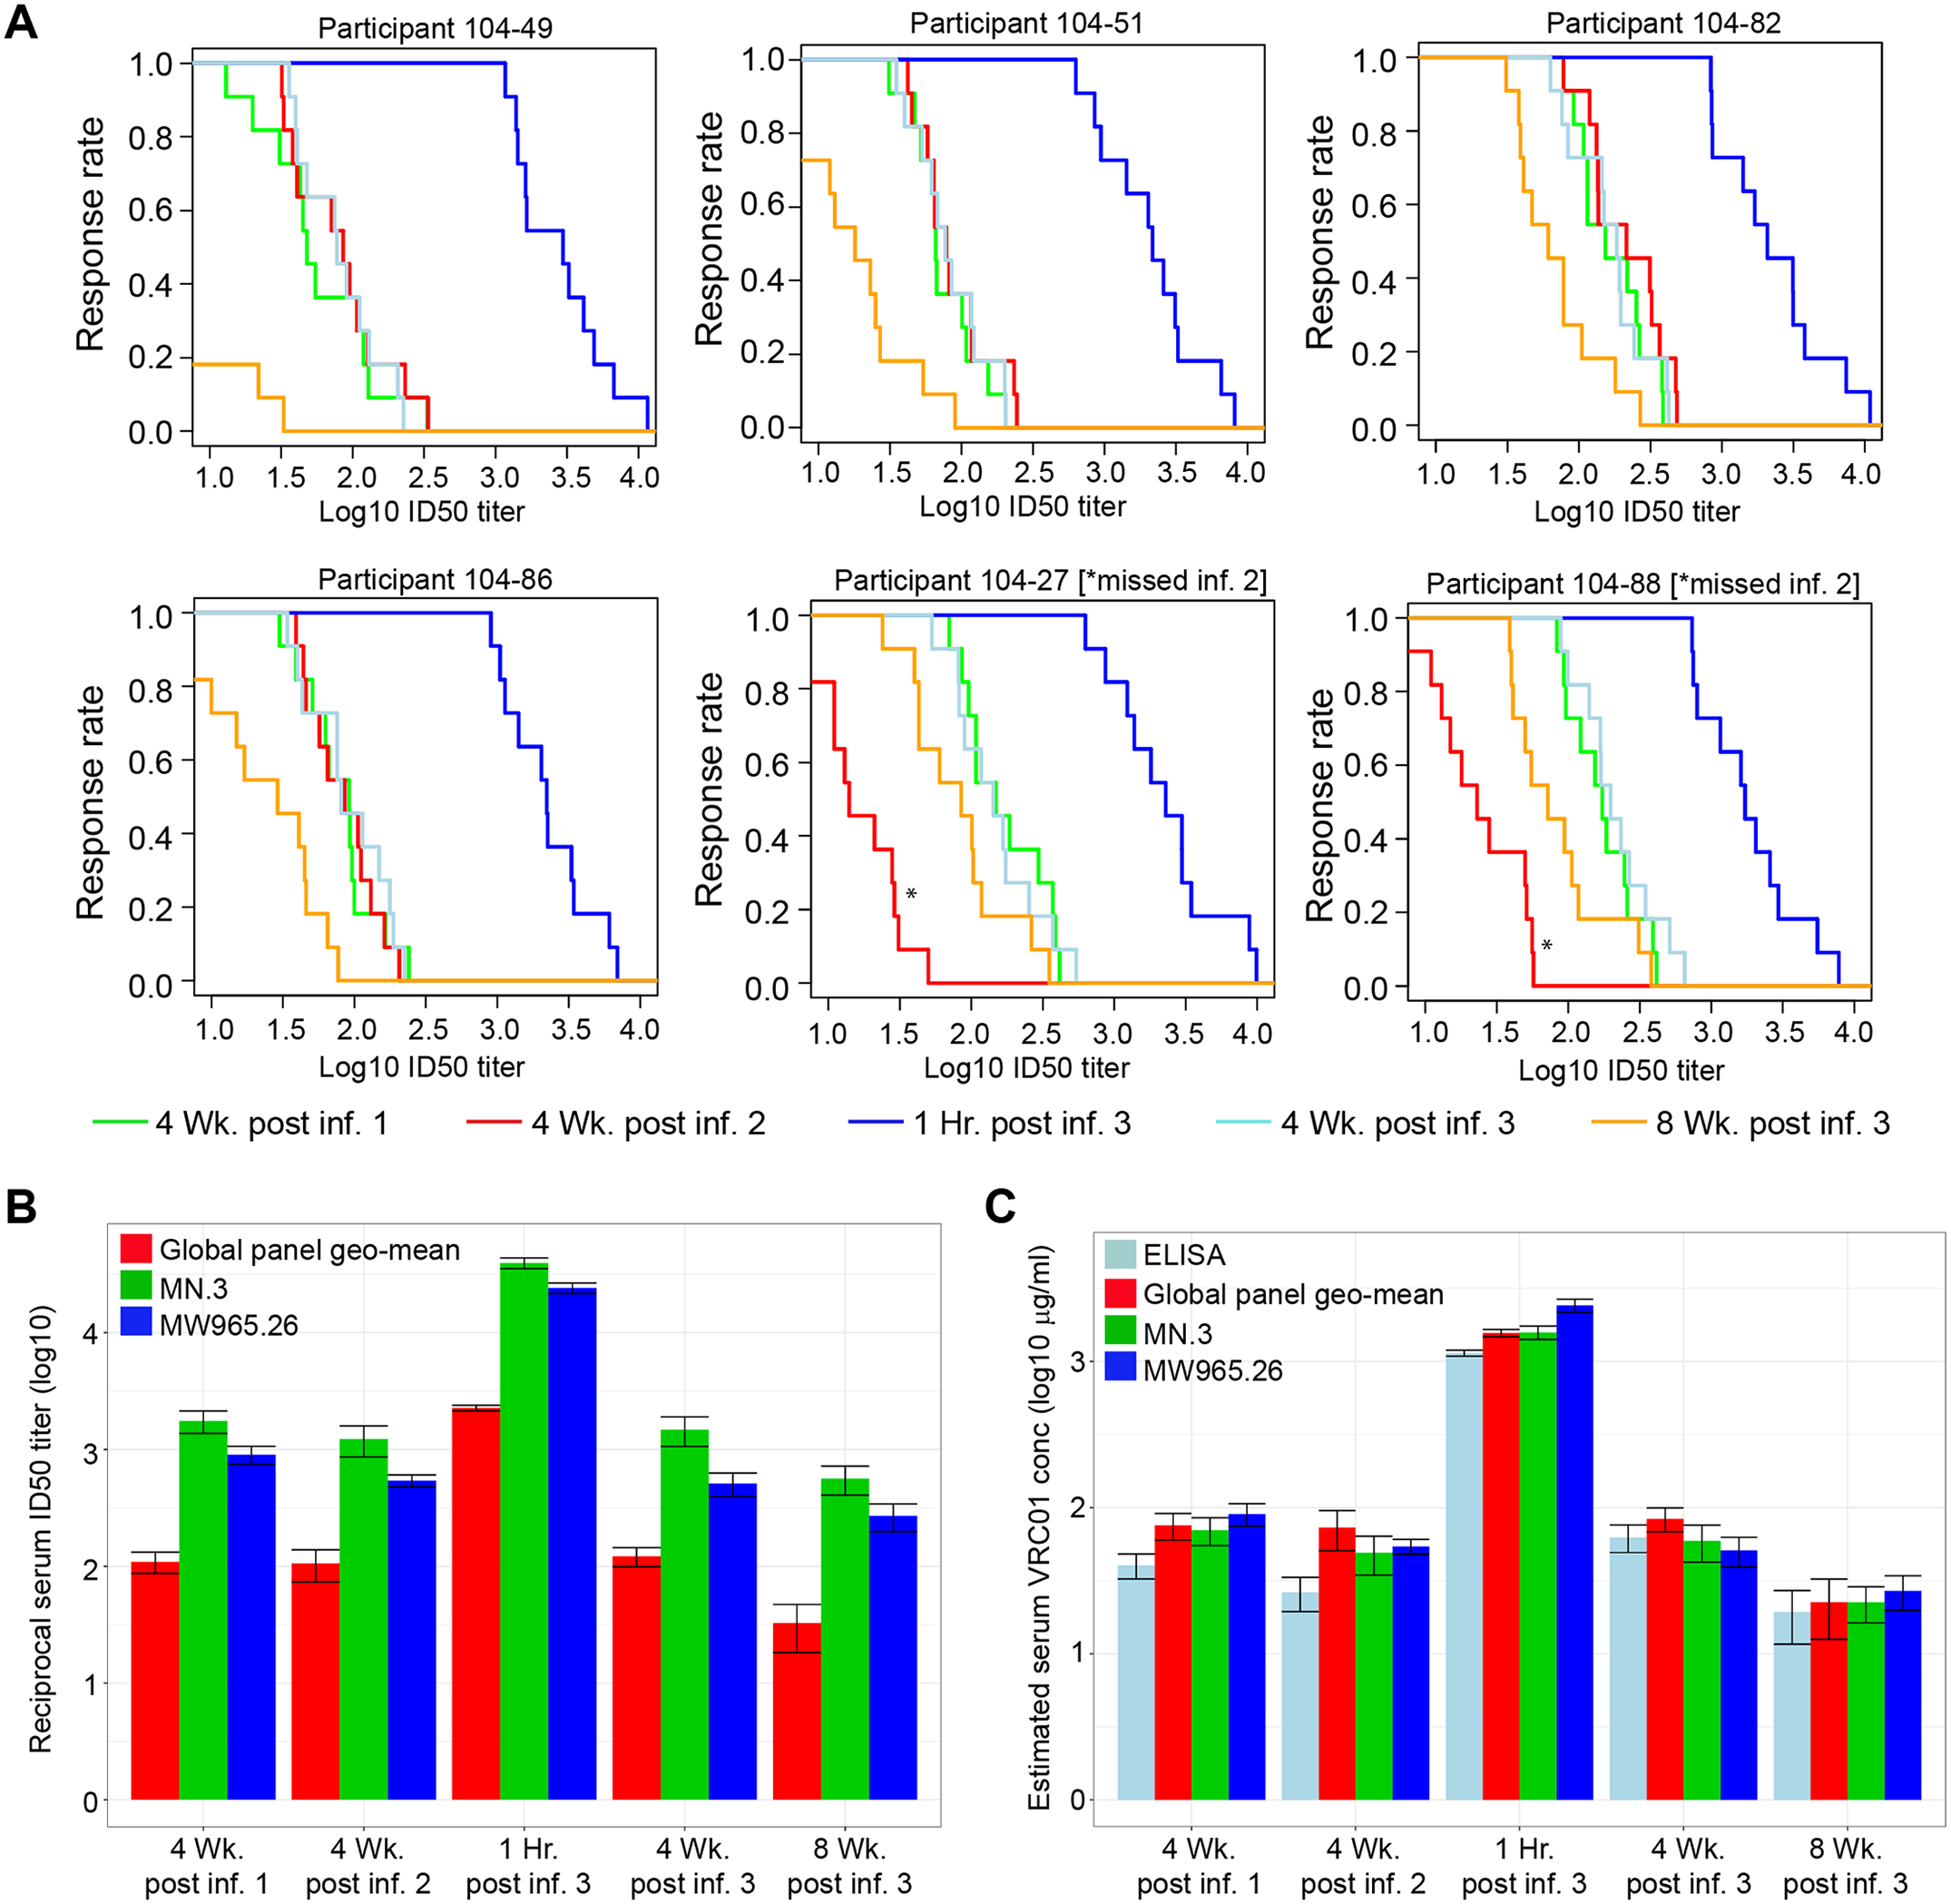 Serum neutralizing activity against multiple isolates at 4 weeks after the first, second, and third infusions and at 1 hour and 8 weeks following the third infusion in 6 T5 participants.